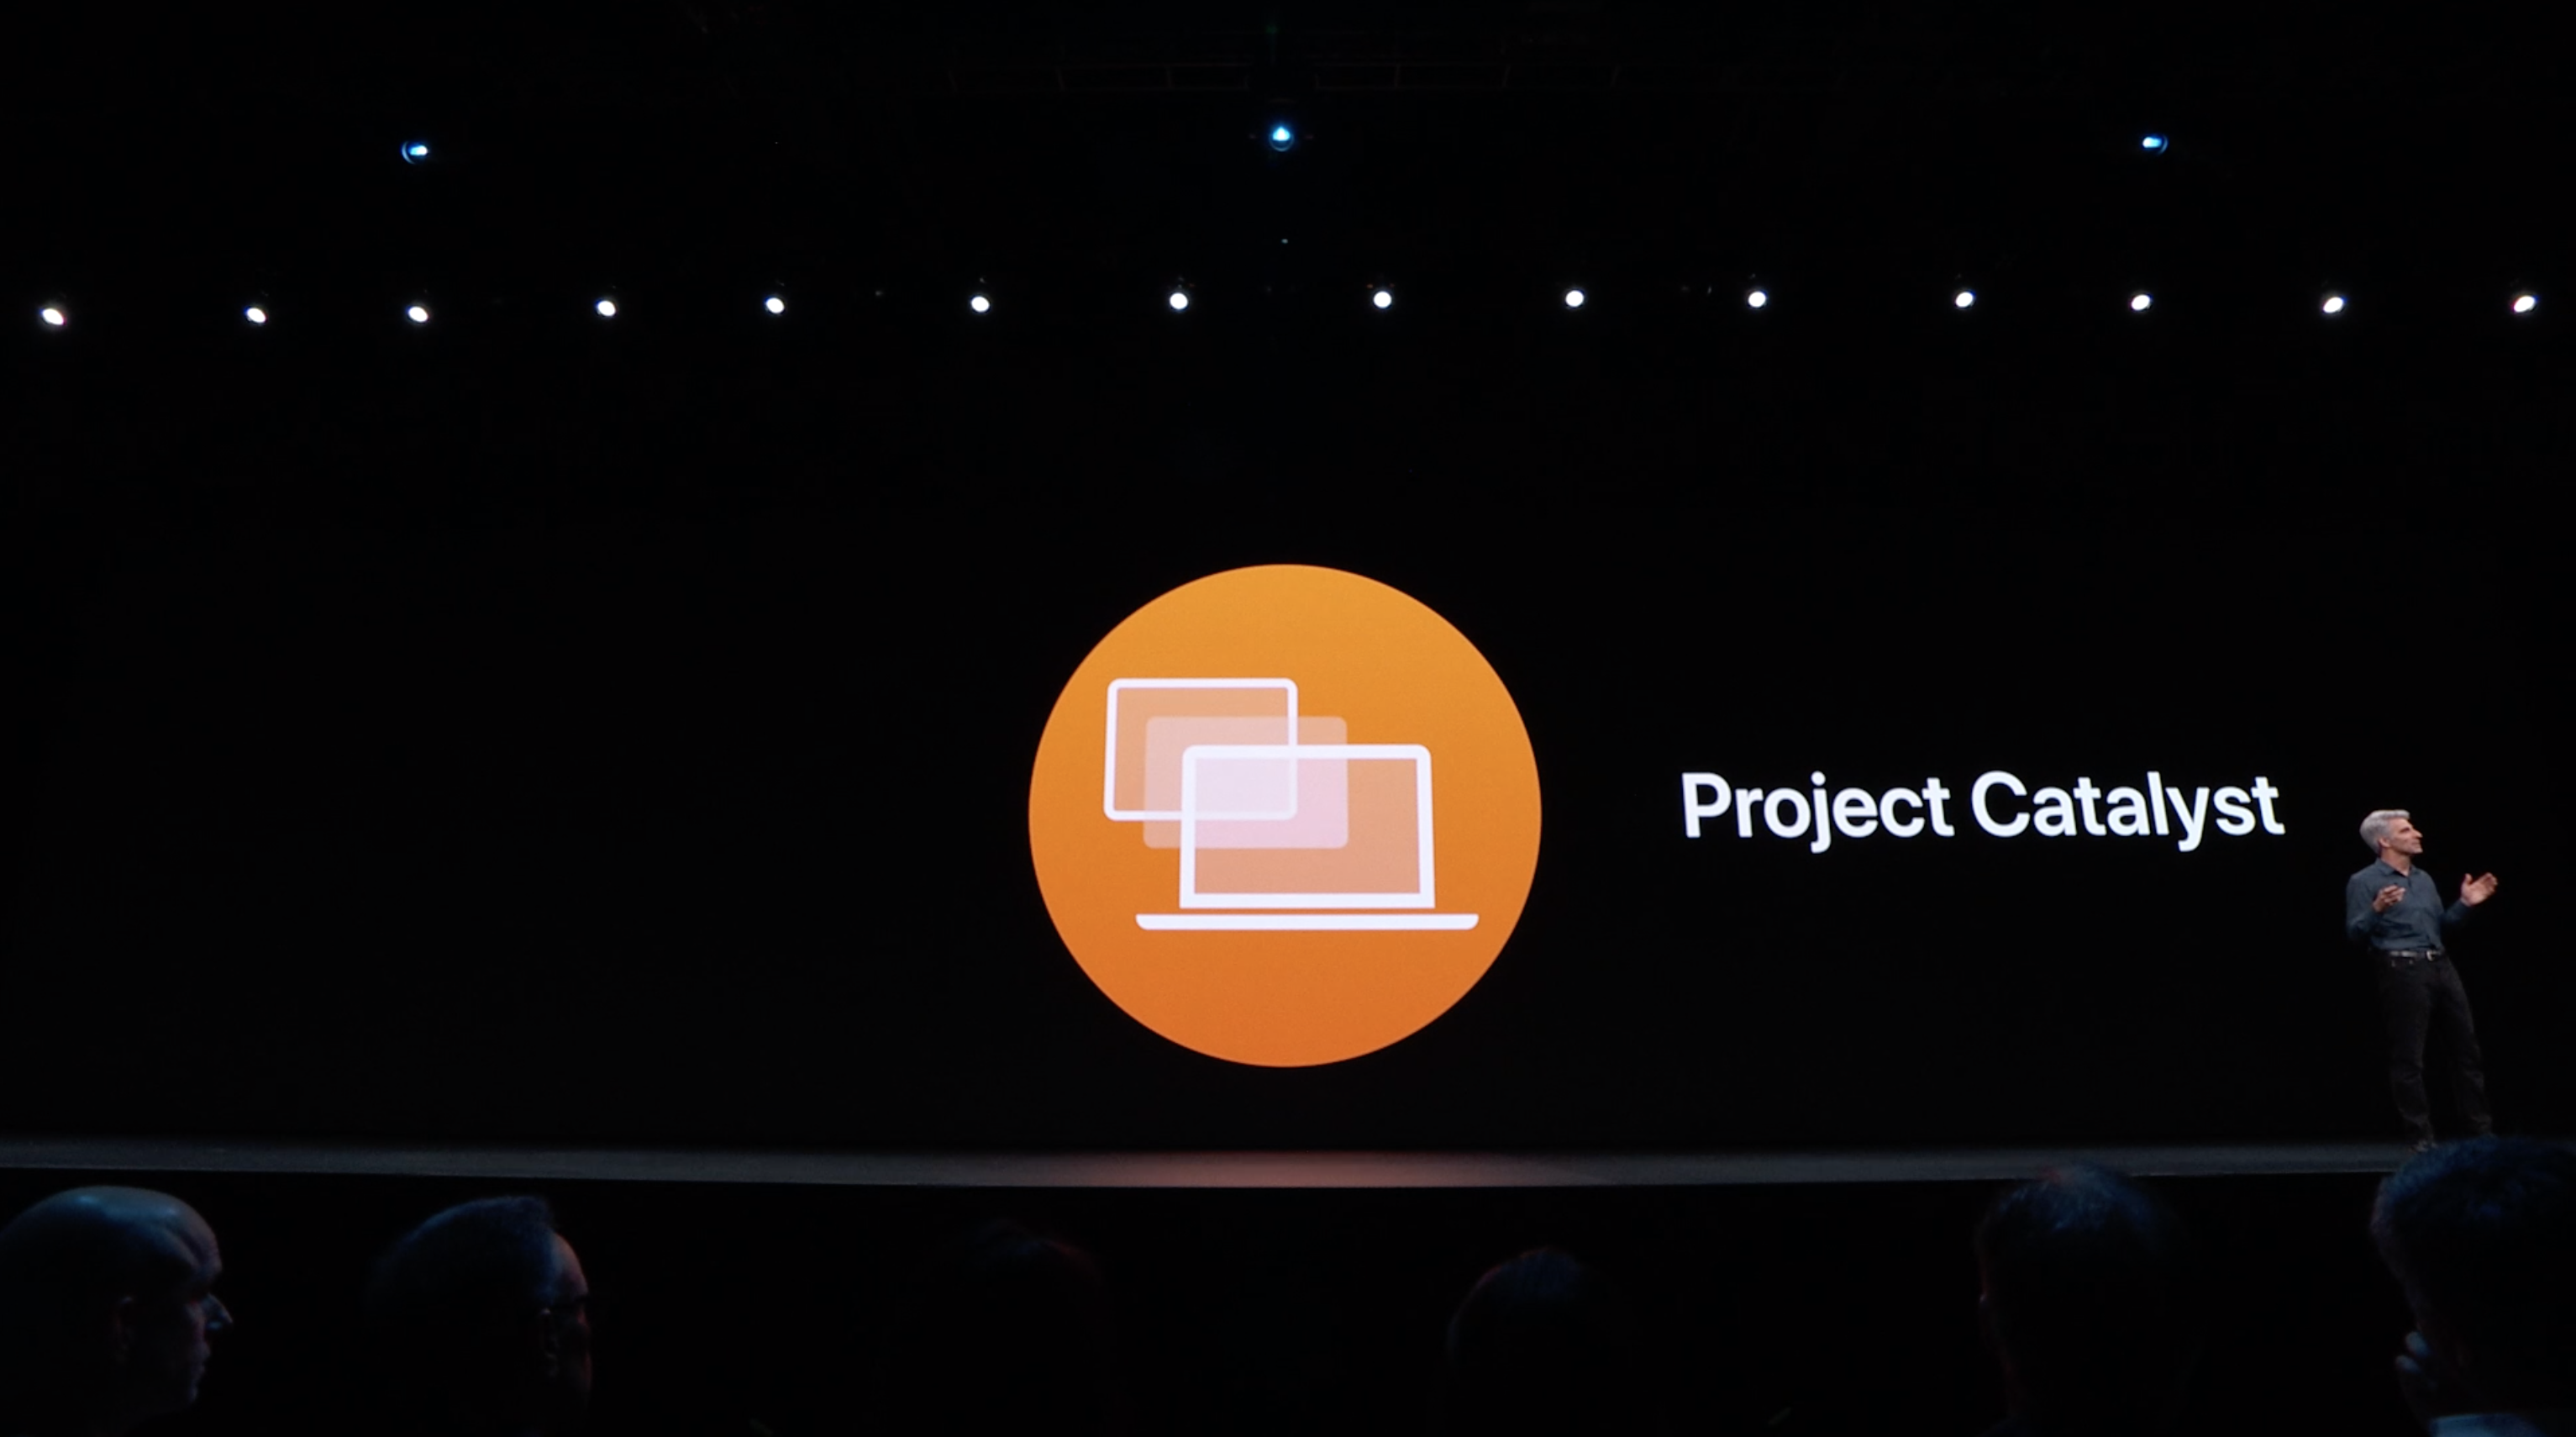 Project Catalyst replaces Marzipan